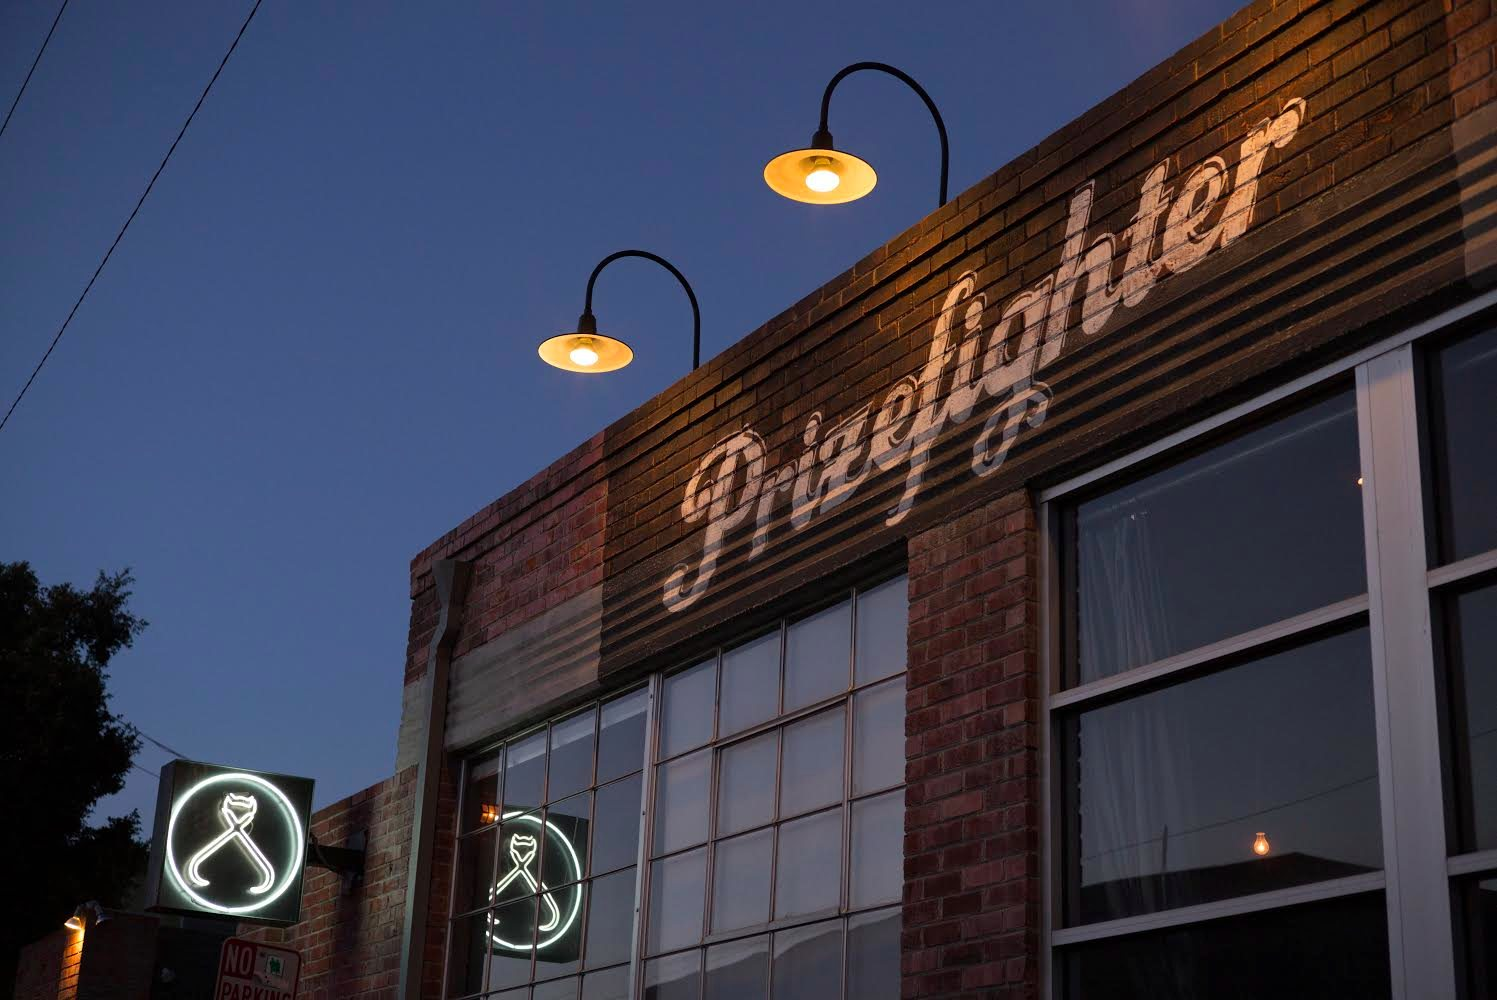 Prizefighter Bar, Emeryville